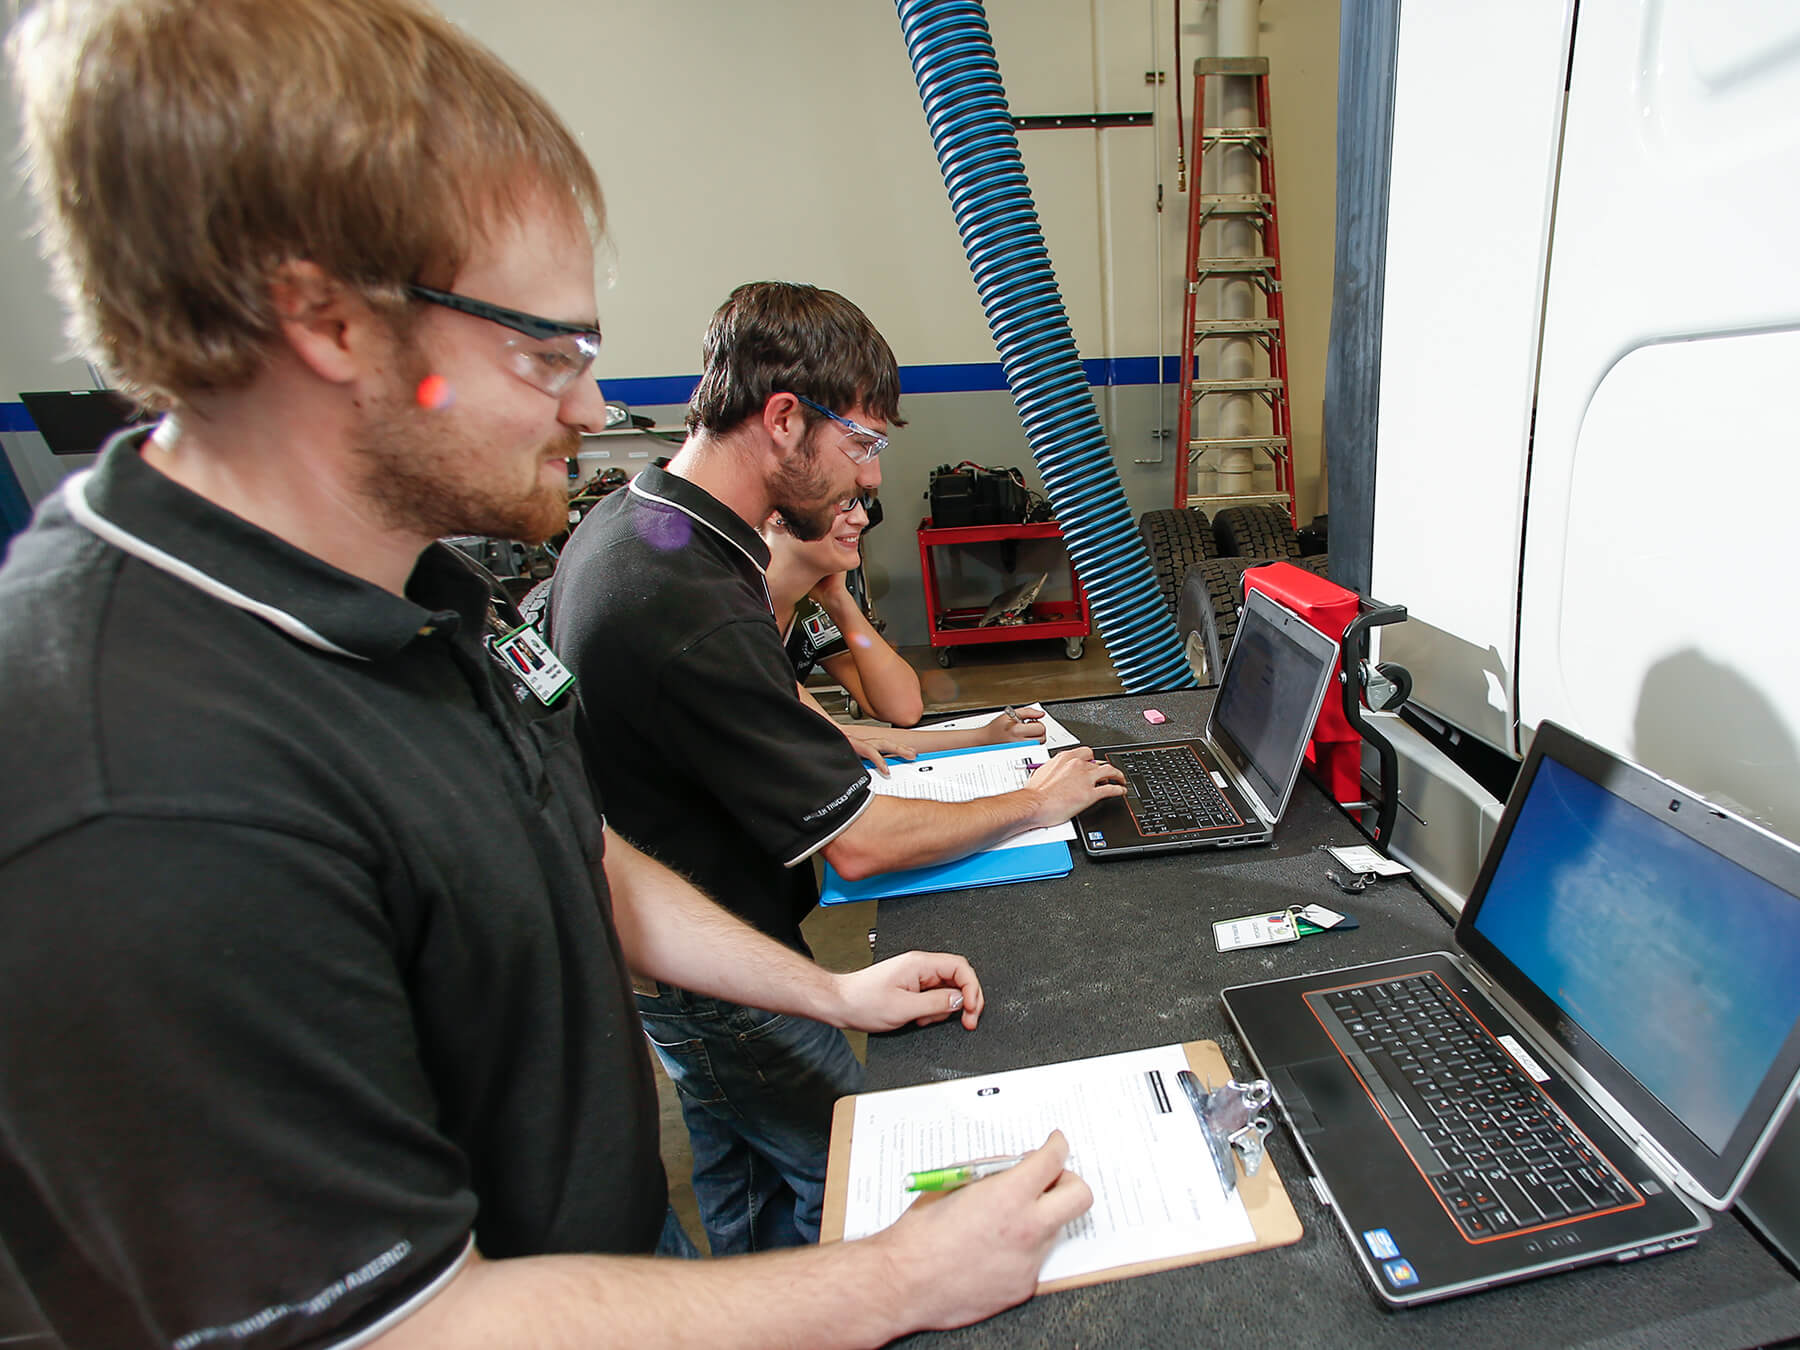 UTI students working on computers